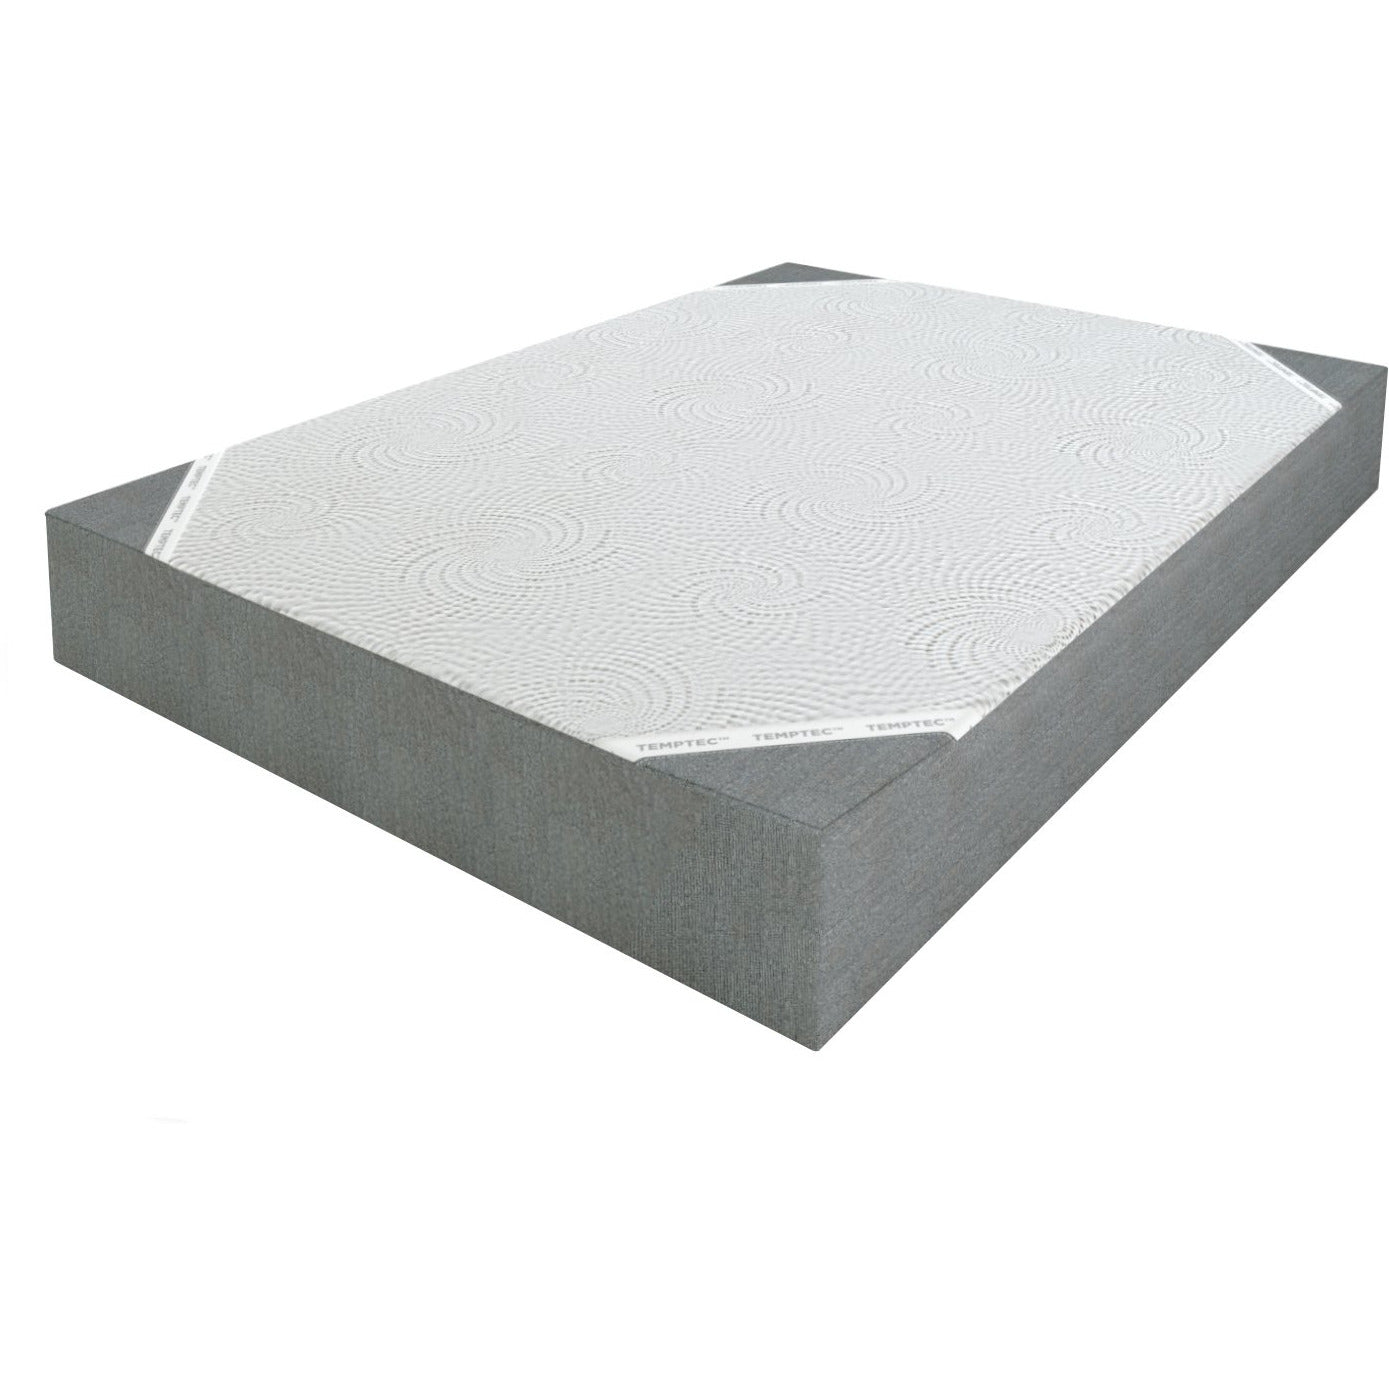 Awakenings Memory Foam Mattress